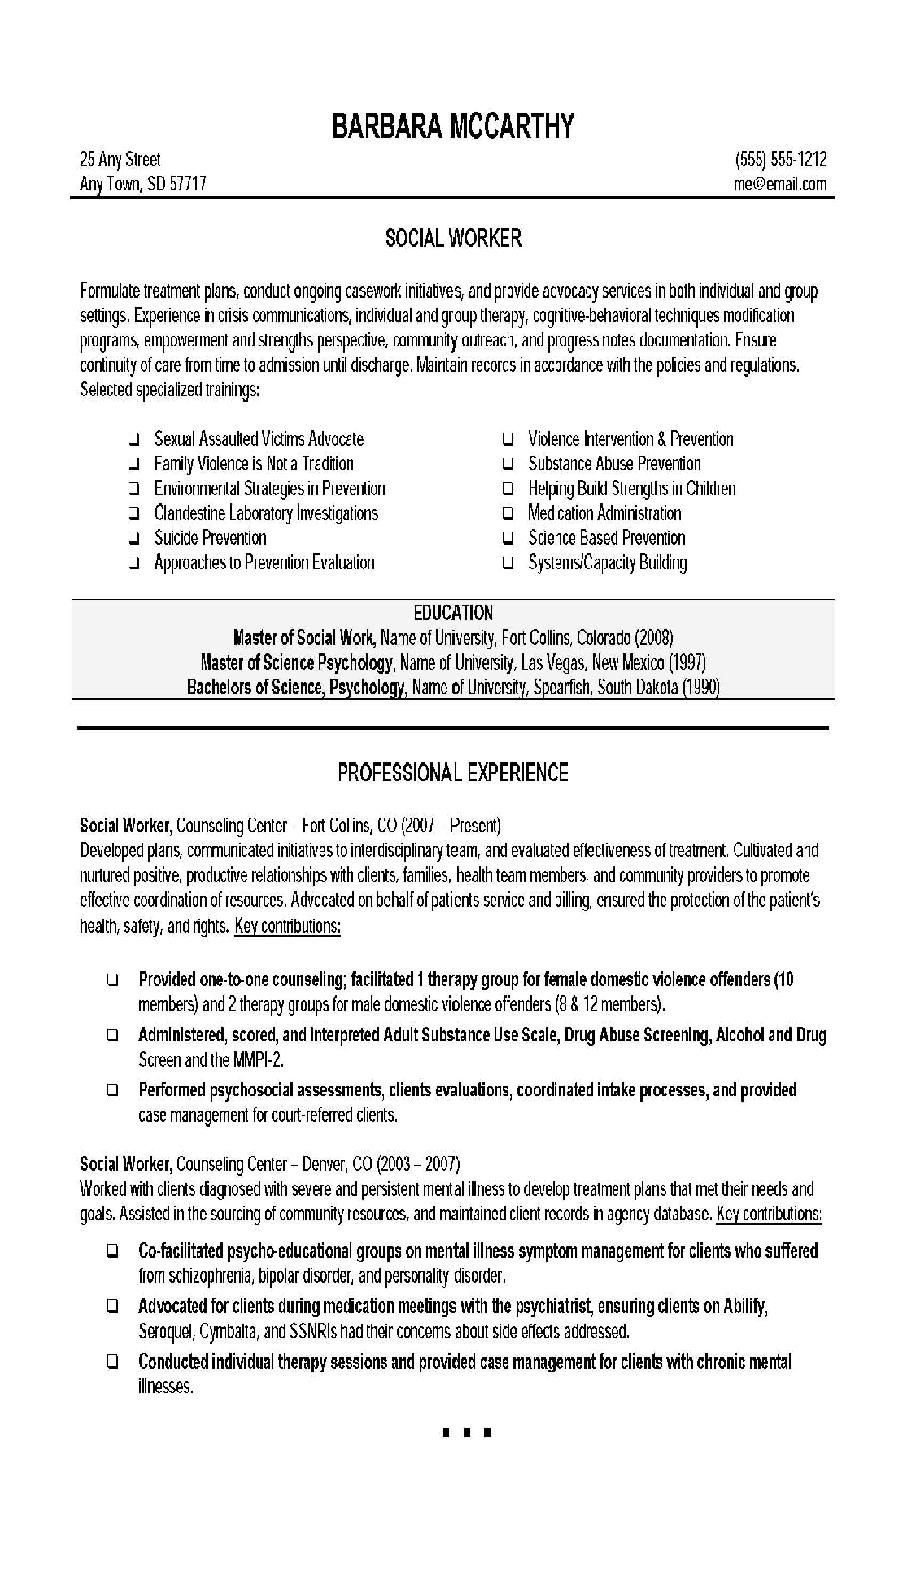 Social Work Resume Sample Social Worker Resume 4  Social Work  Pinterest  Social Work